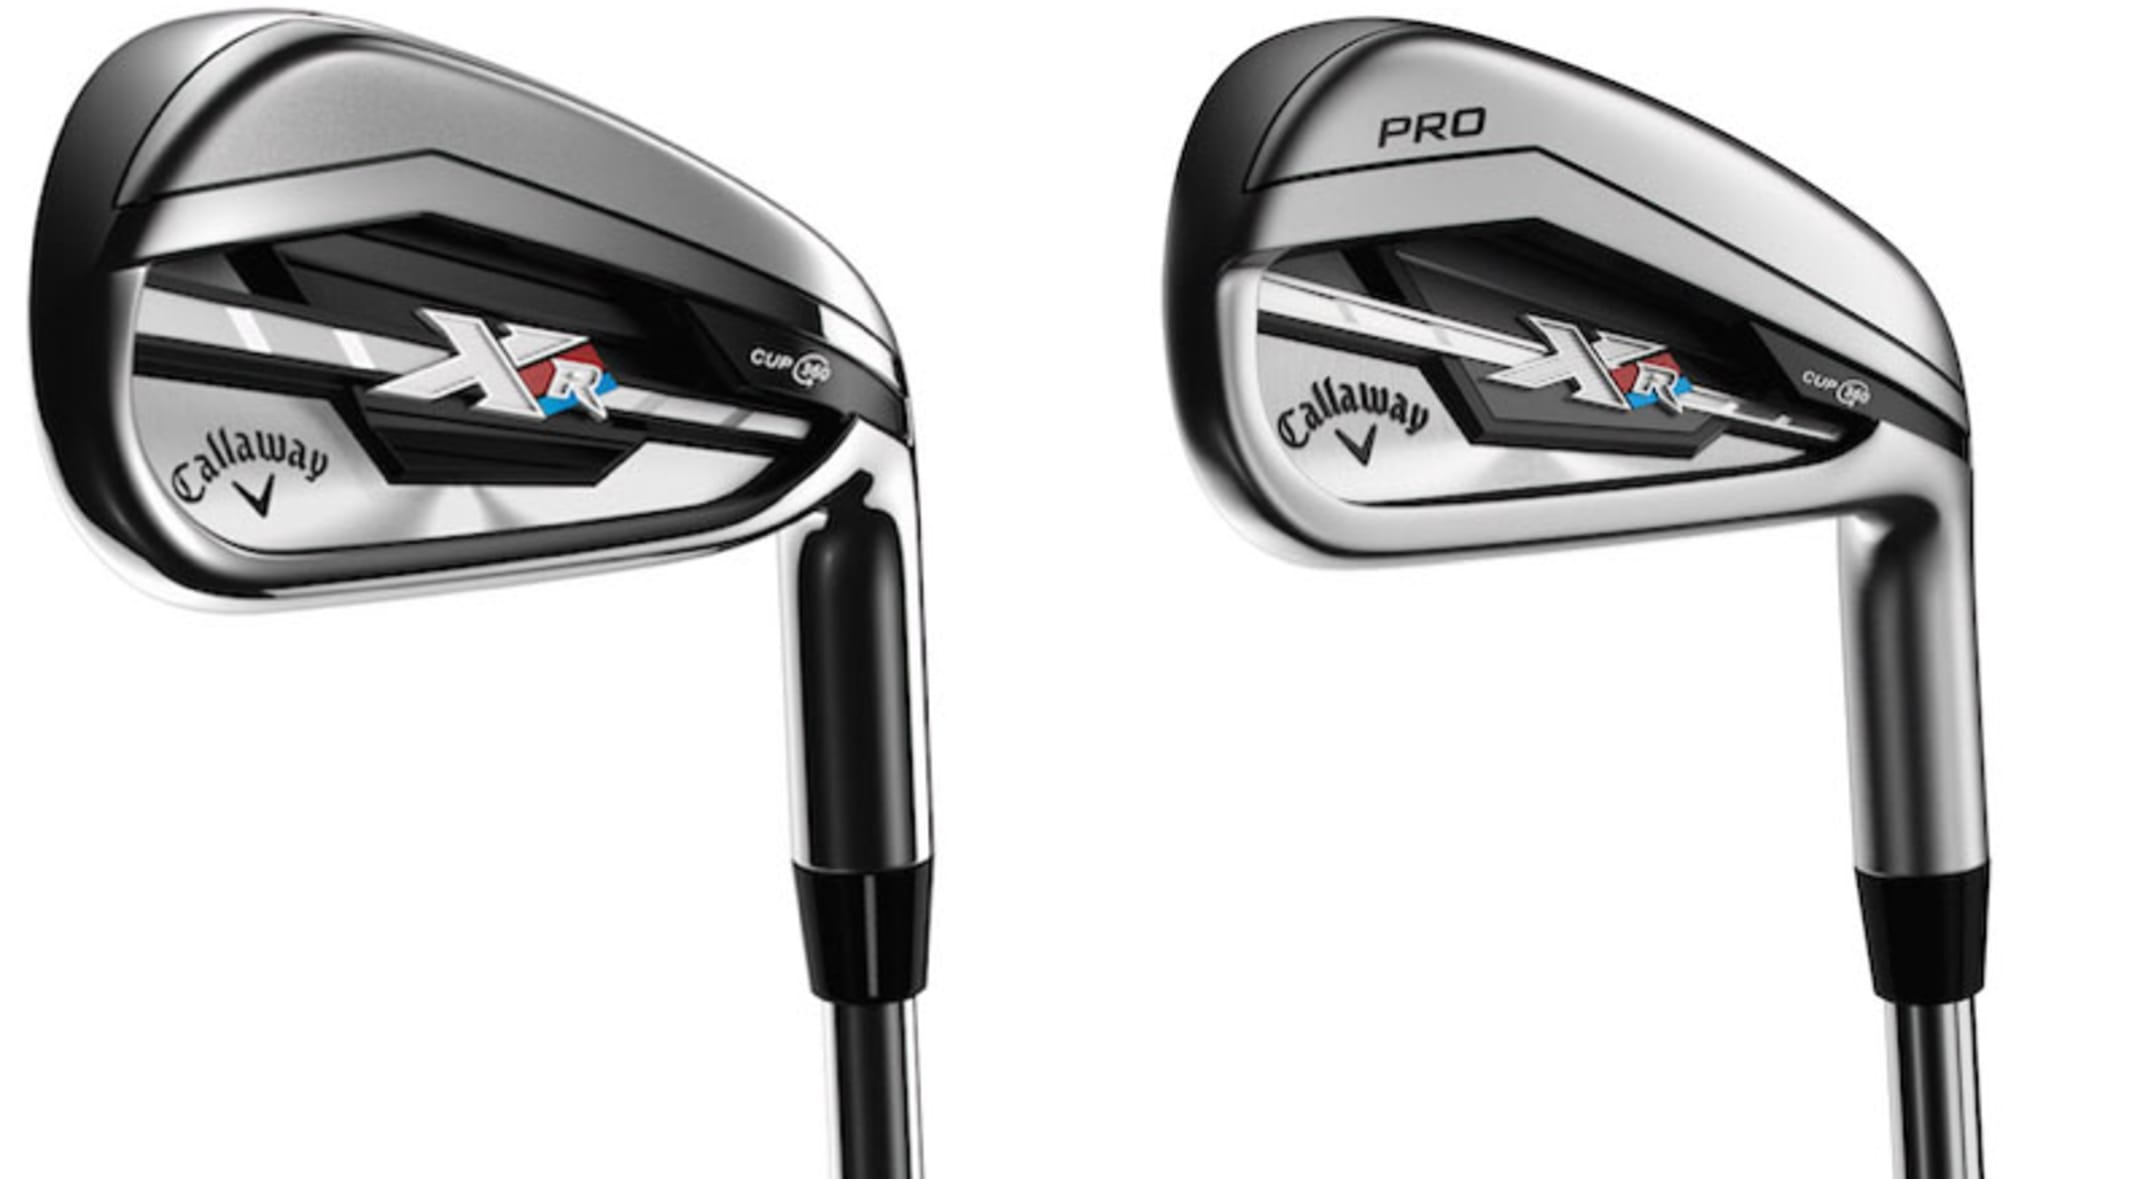 Designing the Callaway XR and XR Pro irons